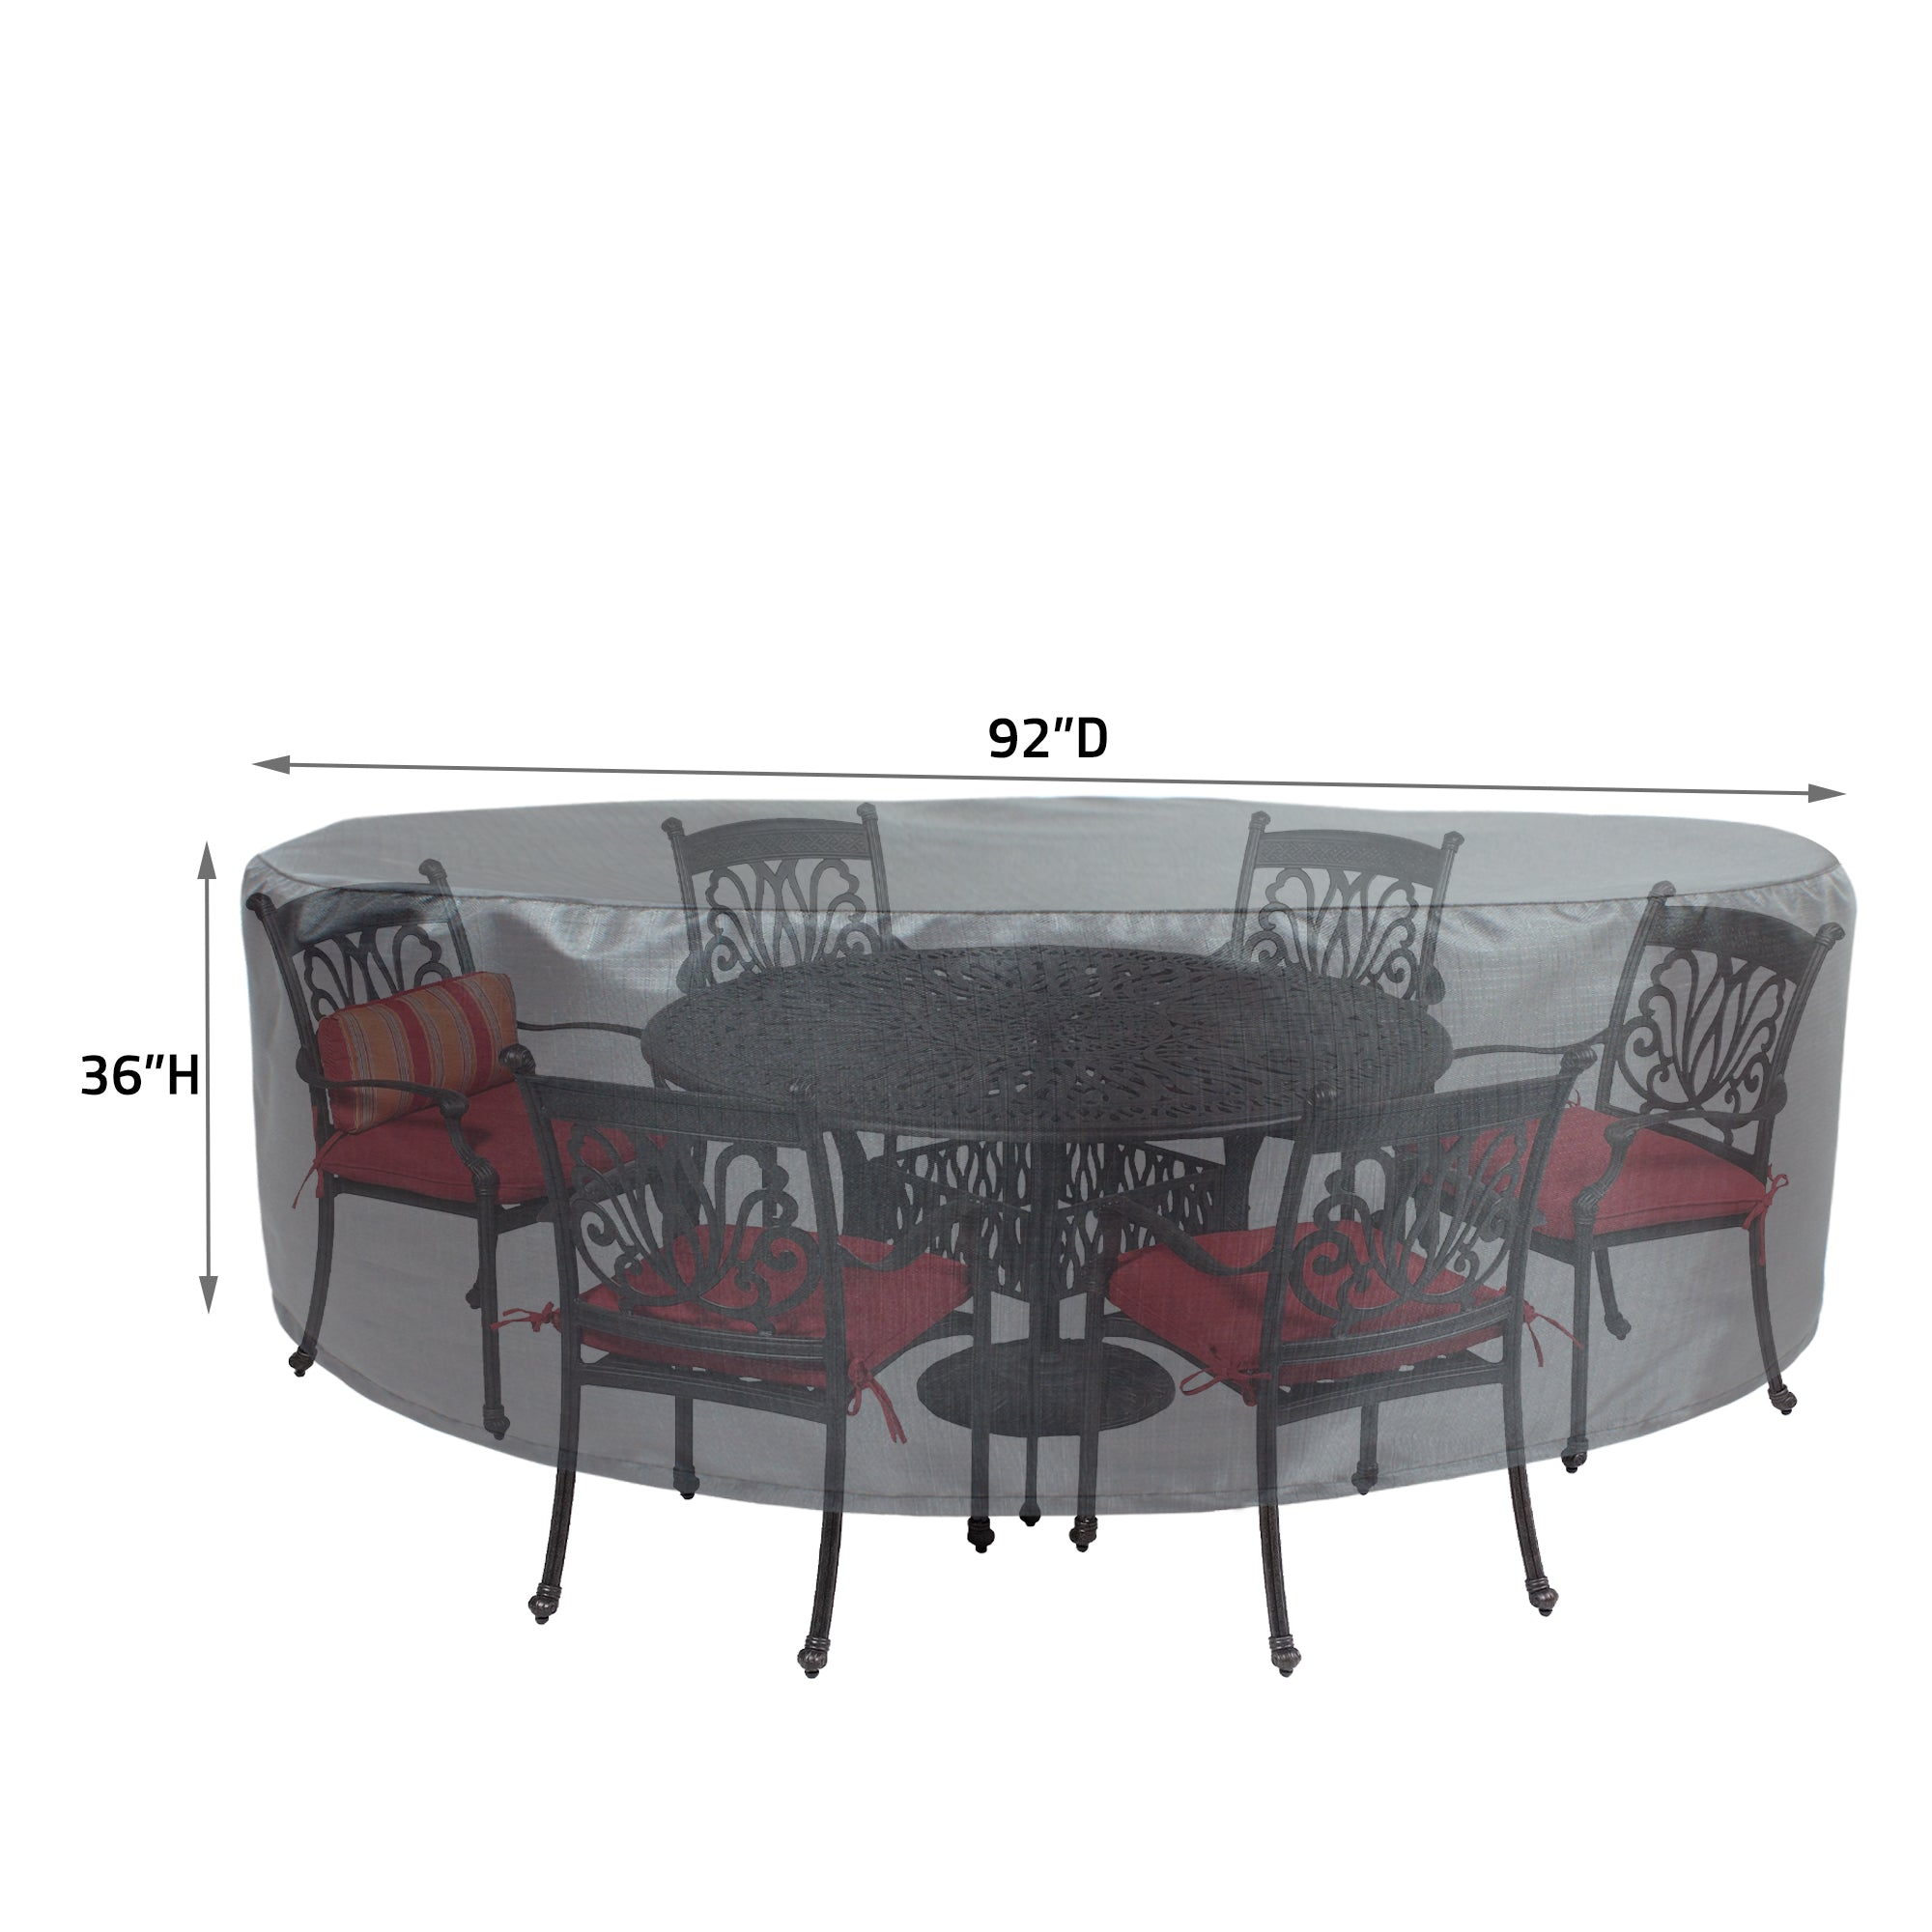 "COV-M571 Premium Mercury Cover 54"" Round Table & Chair"